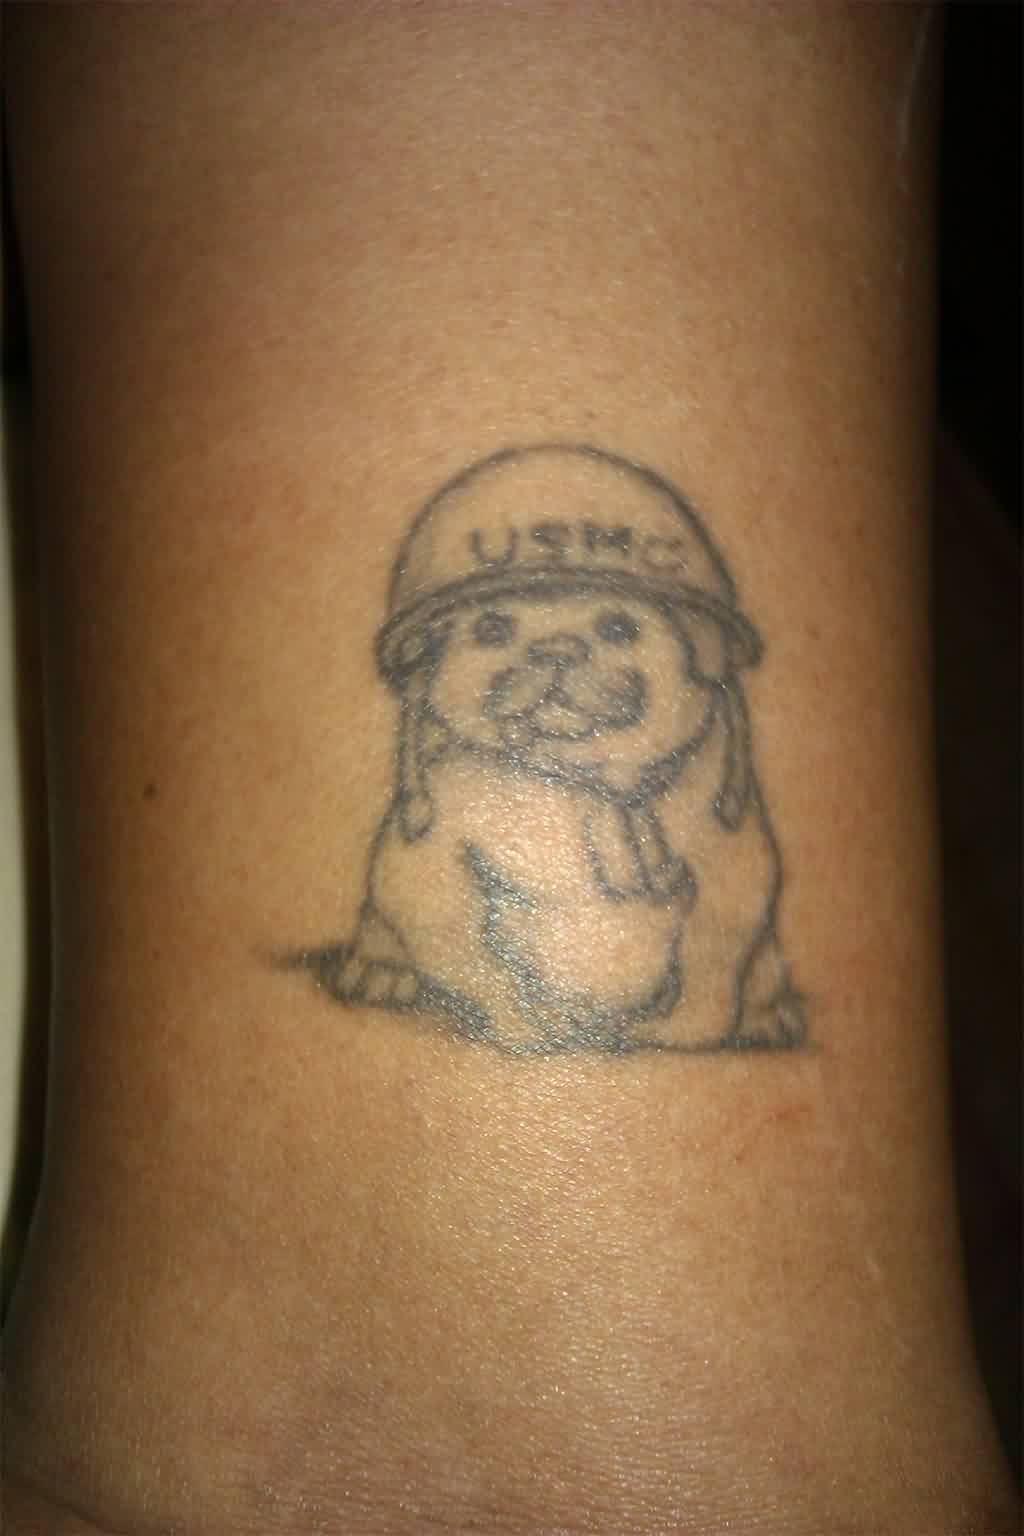 Cute Puppy Wearing USMC Helmet Tattoo